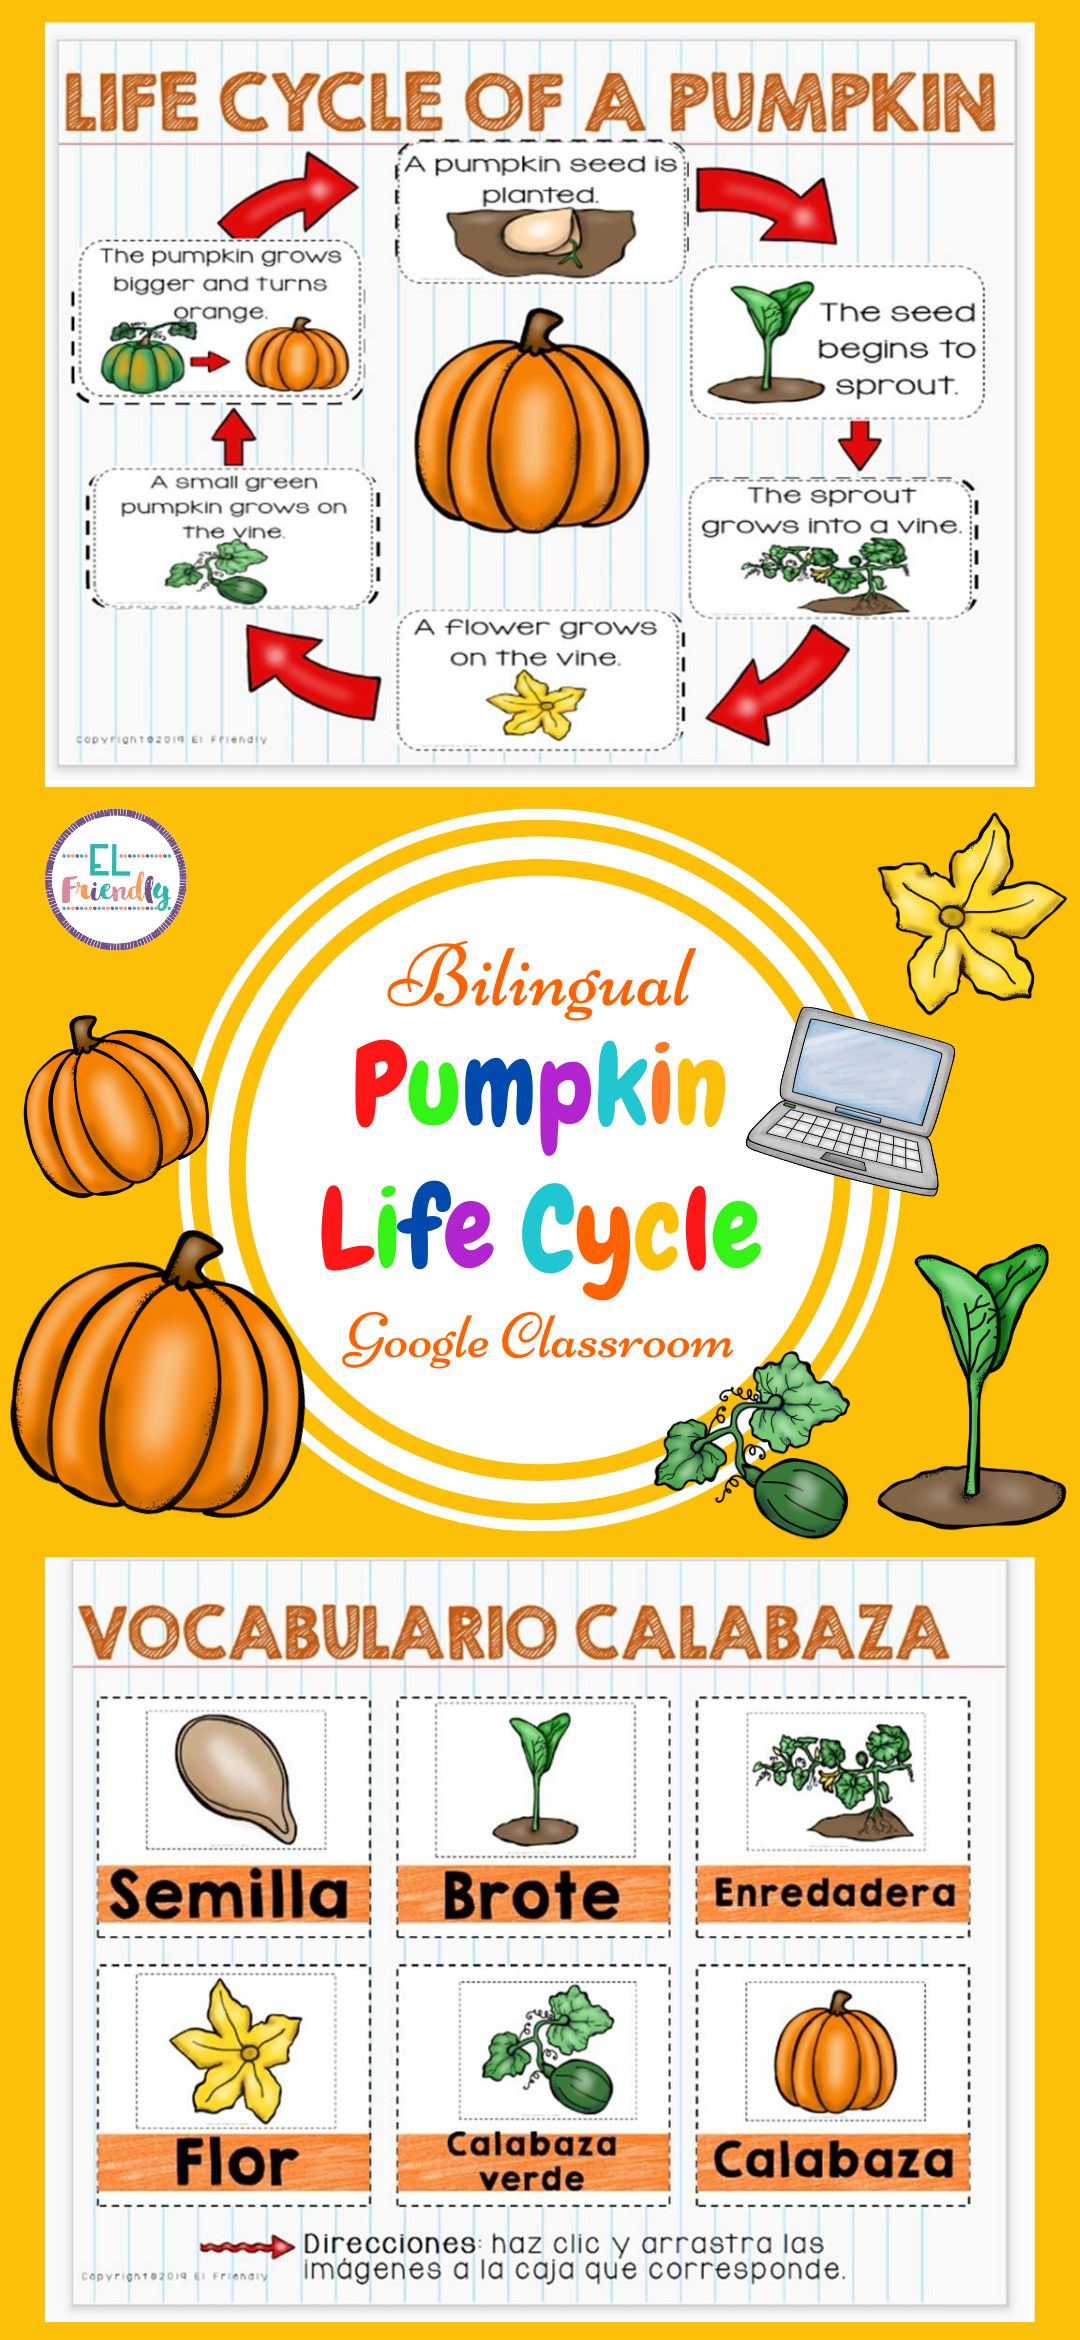 Pumpkin Life Cycle Esl Classroom Spanish Version